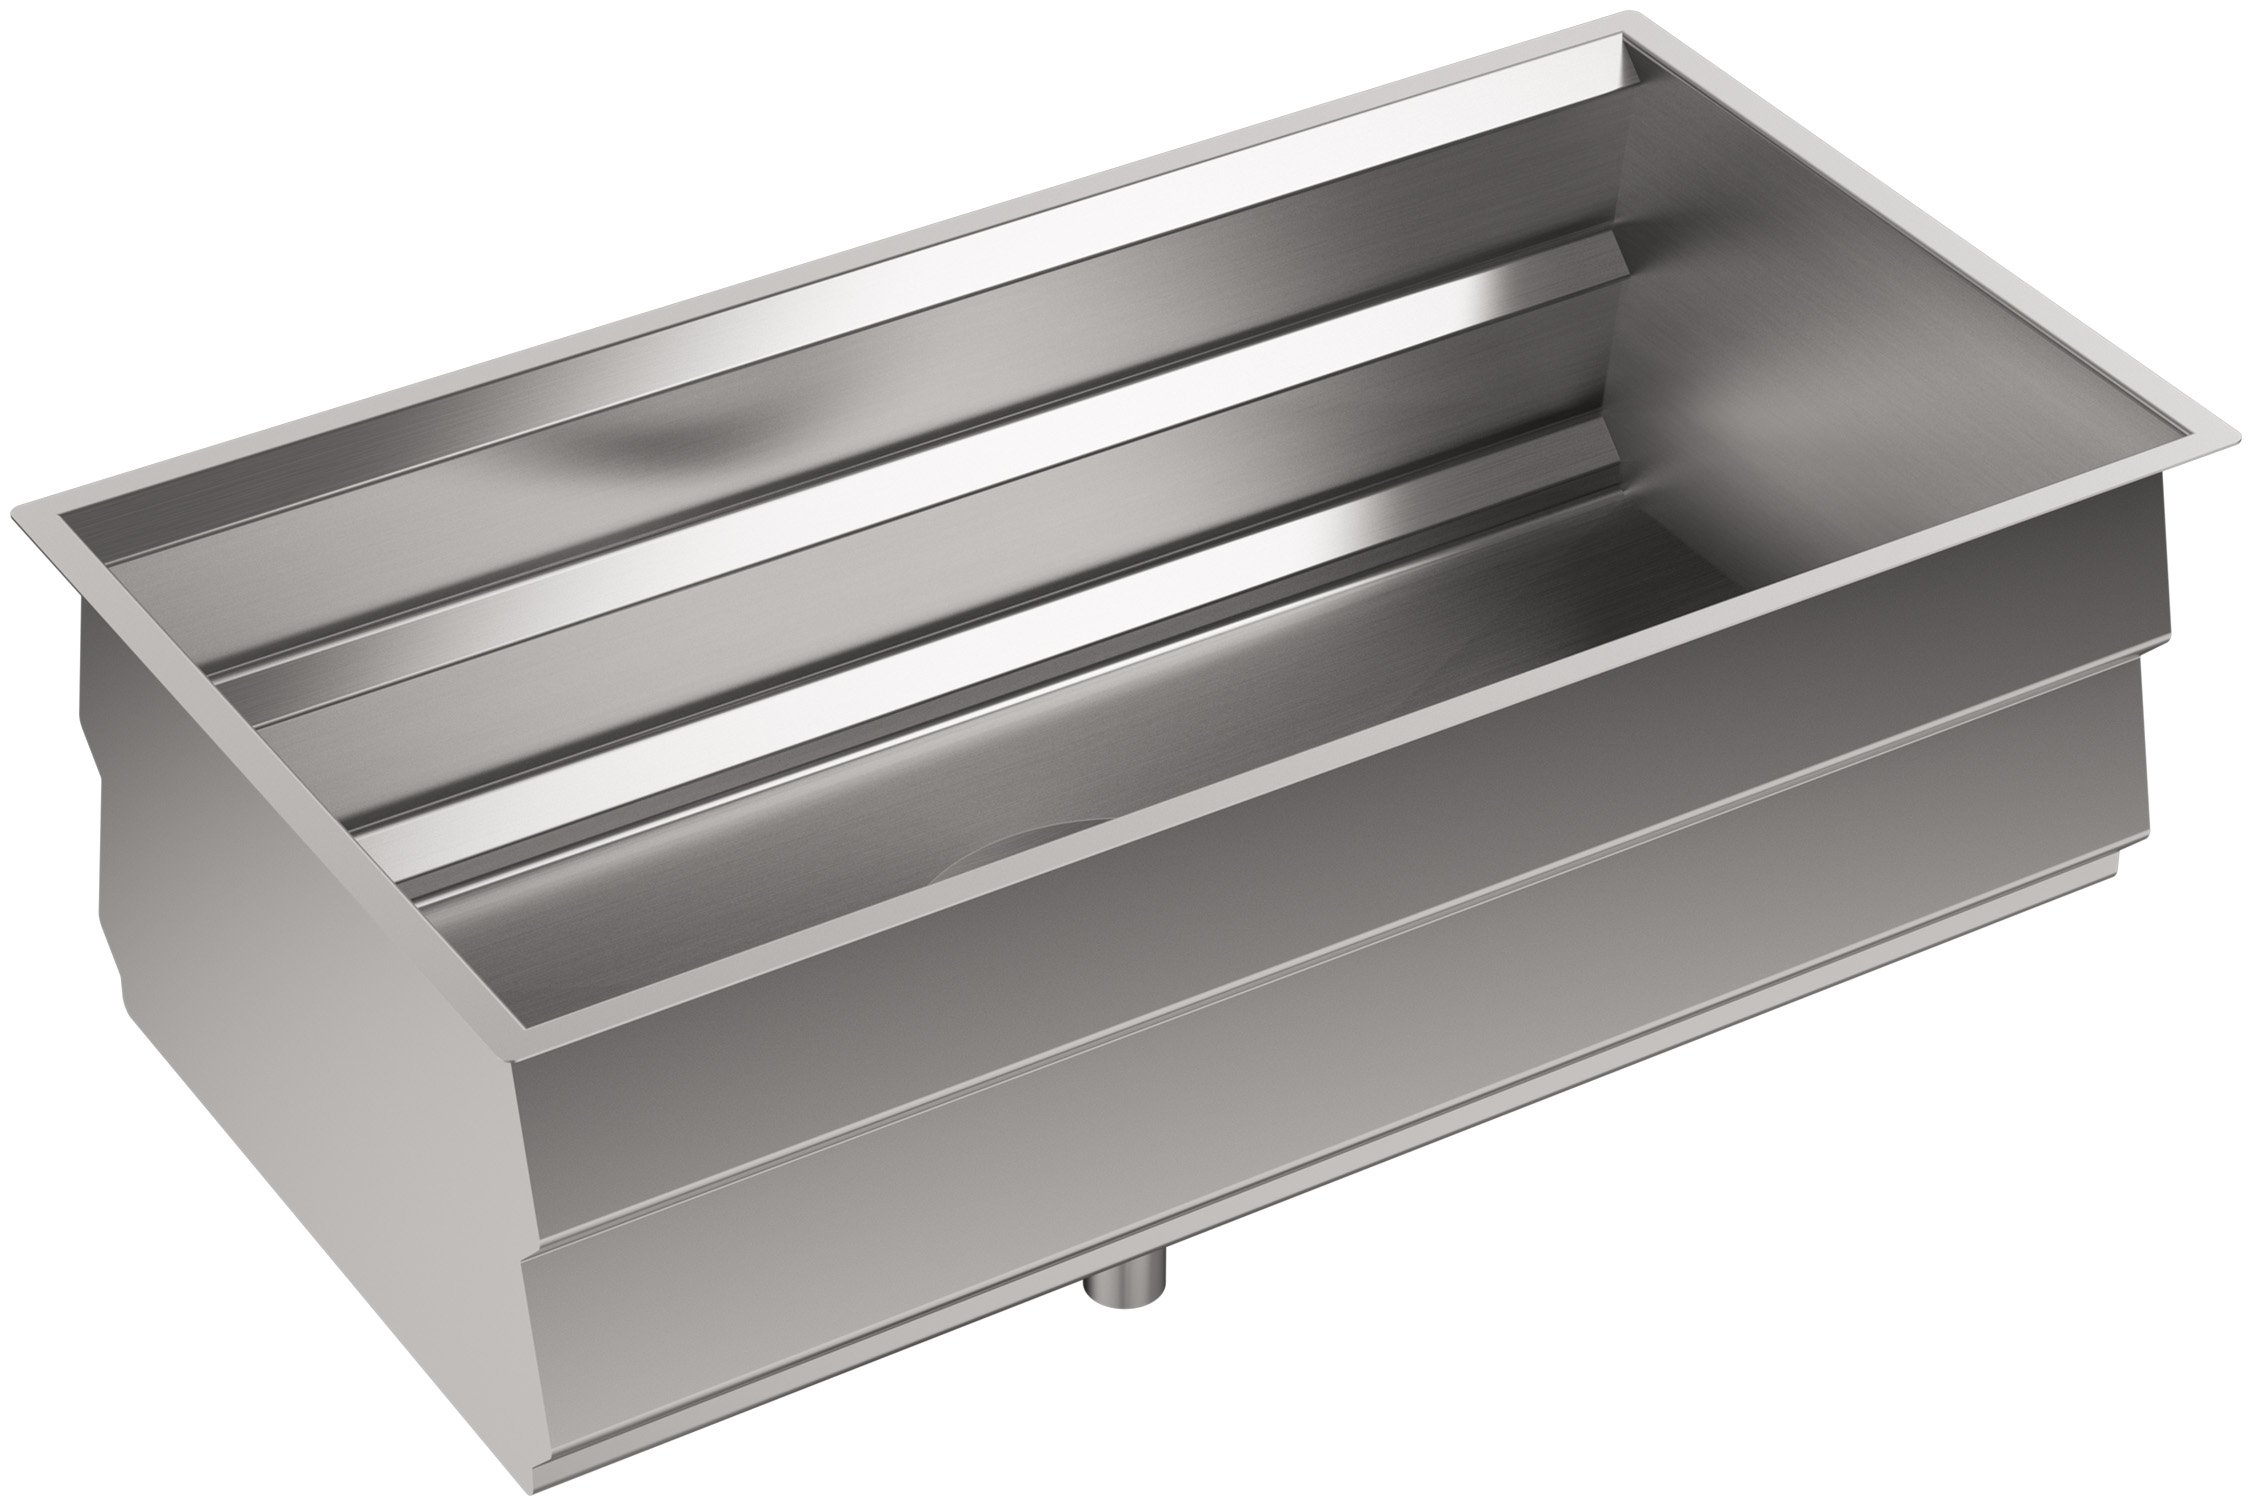 KOHLER Prolific 33 inch Workstation Stainless Steel Single Bowl Kitchen Sink with included Accessories, 11 inches deep, 18 gauge, Undermount installation K-5540-NA by Kohler (Image #3)